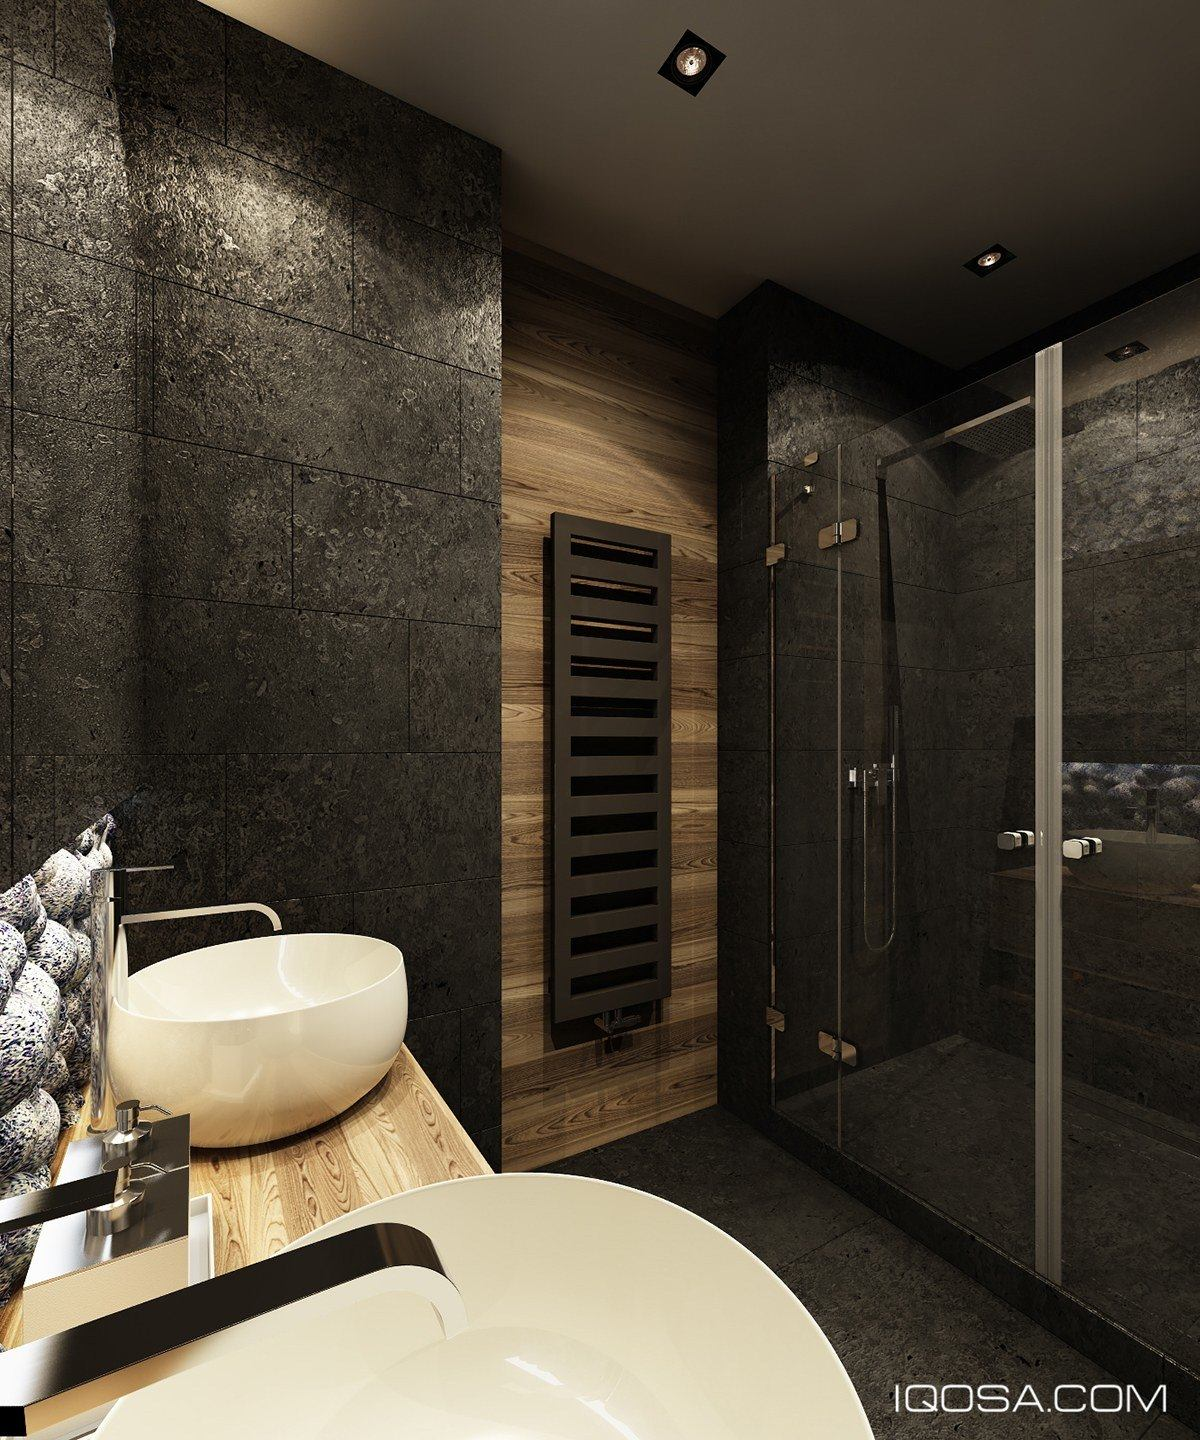 Black And Wood Bathroom Design - Playful ways to brighten neutral color themes